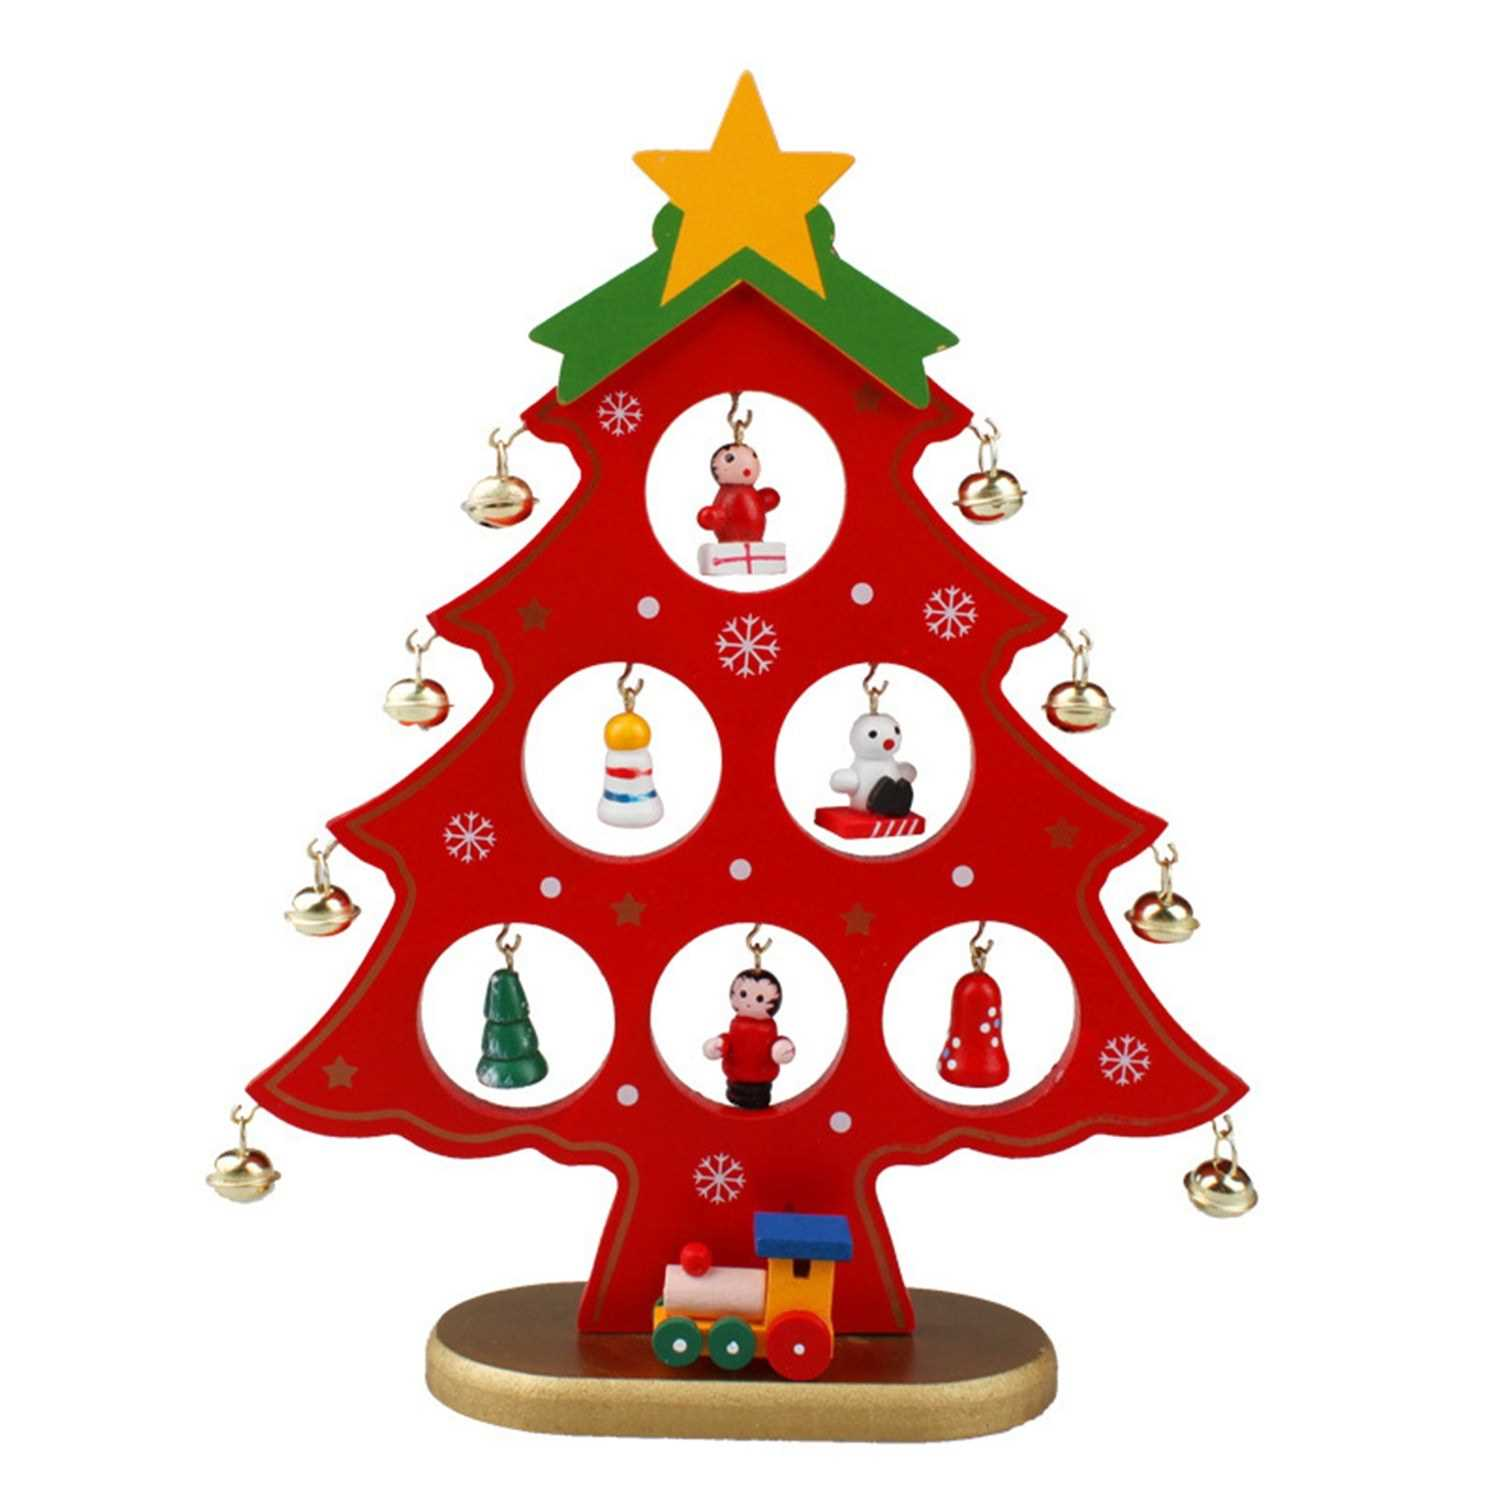 8 66 Inch Christmas Tree With Hanging Decorations Decorative Wooden Xmas Tree Hanging Ornaments For Indoor Outdoor Garden Patio Backyard Party Decor Red